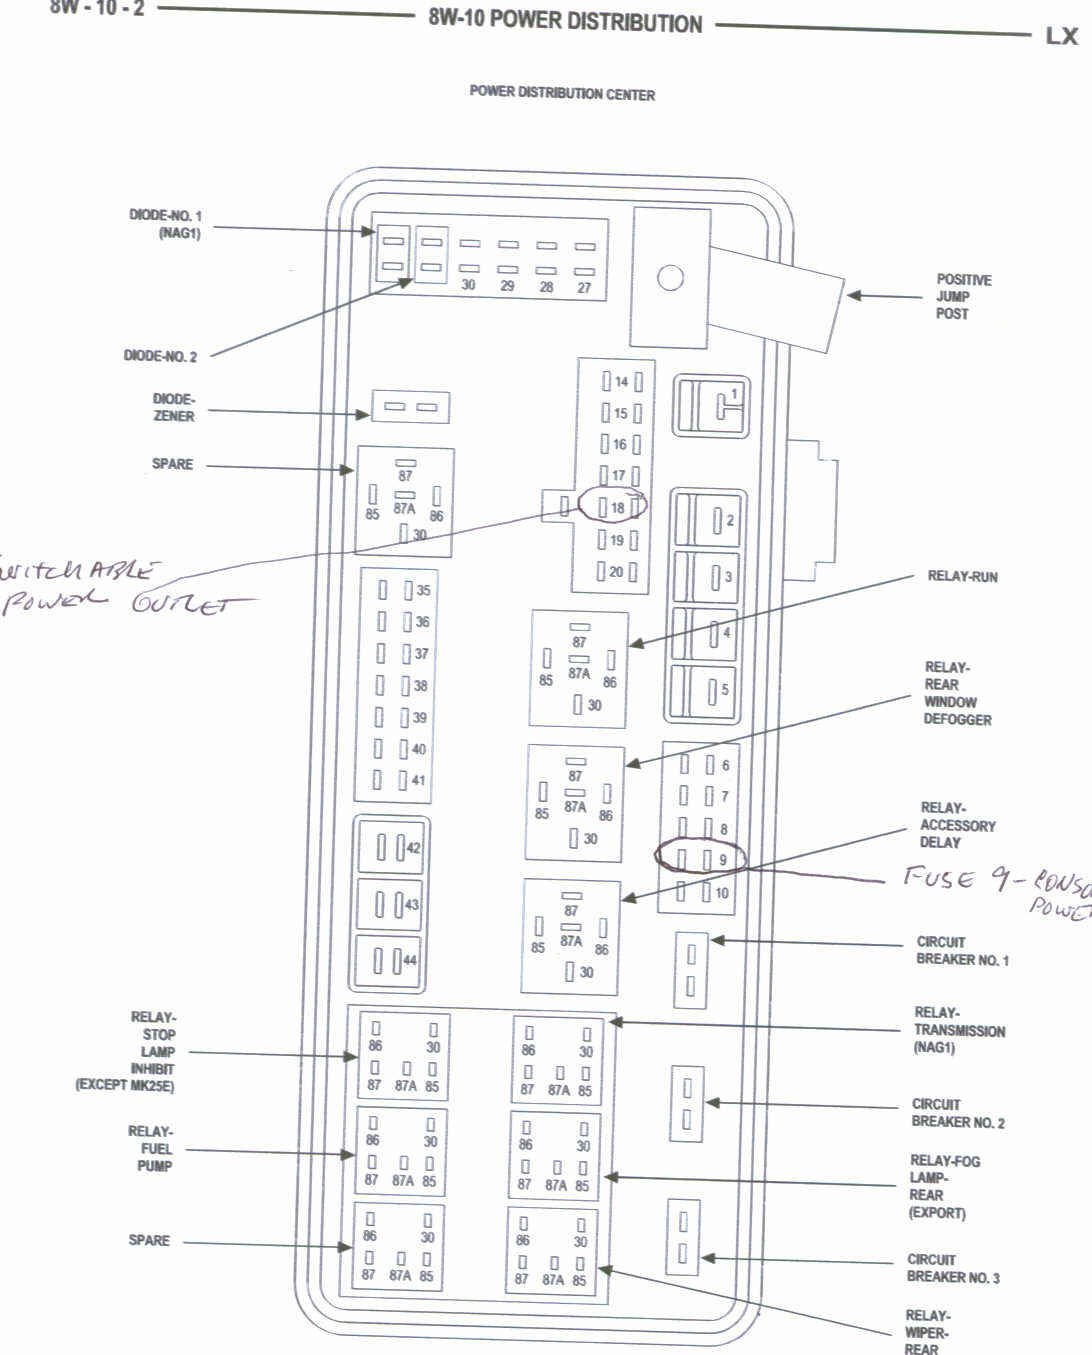 diagram] 2007 chrysler aspen fuse box diagram full version hd quality box  diagram - waterdiagram.silvi-trimmings.it  silvi-trimmings.it